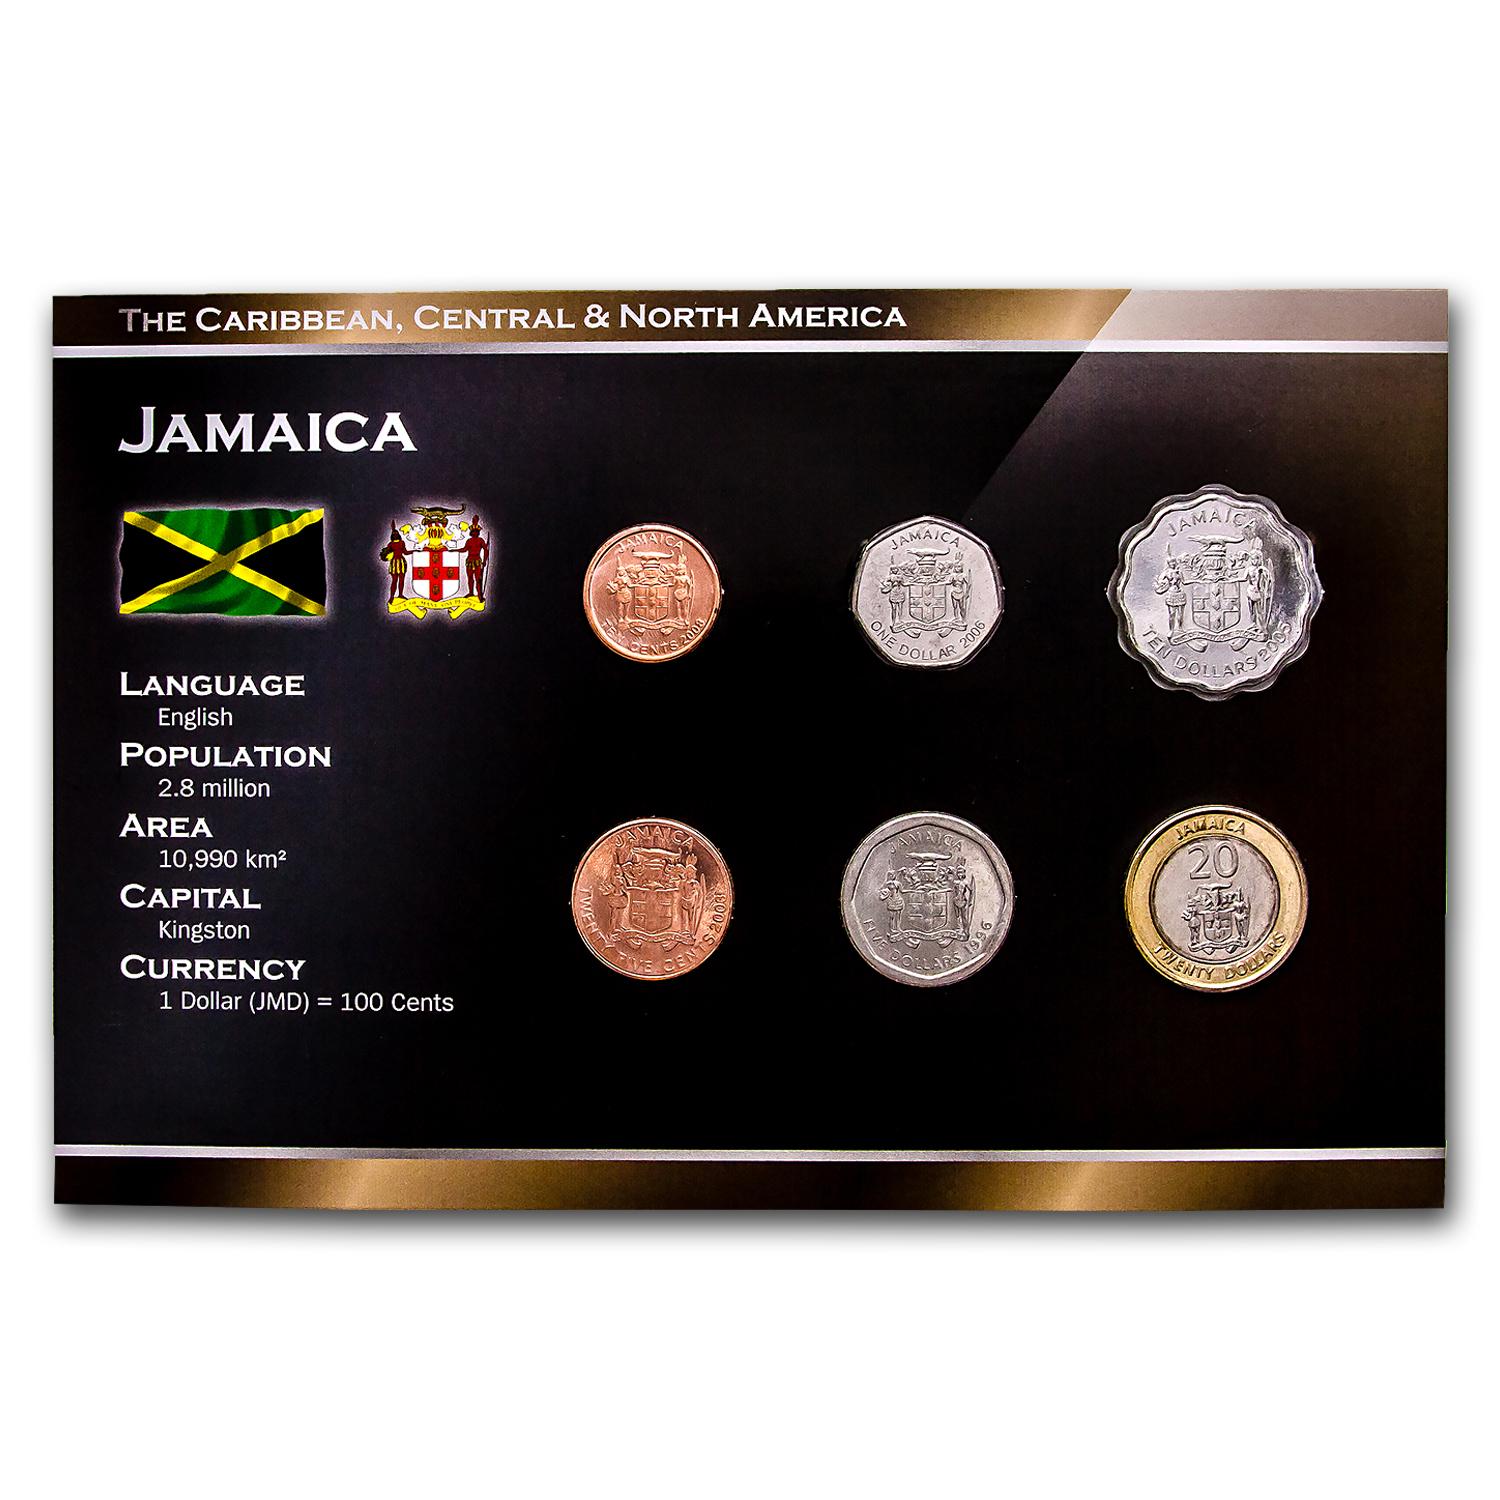 2001 Jamaica 10 Cent-$20 6-Coin Set BU